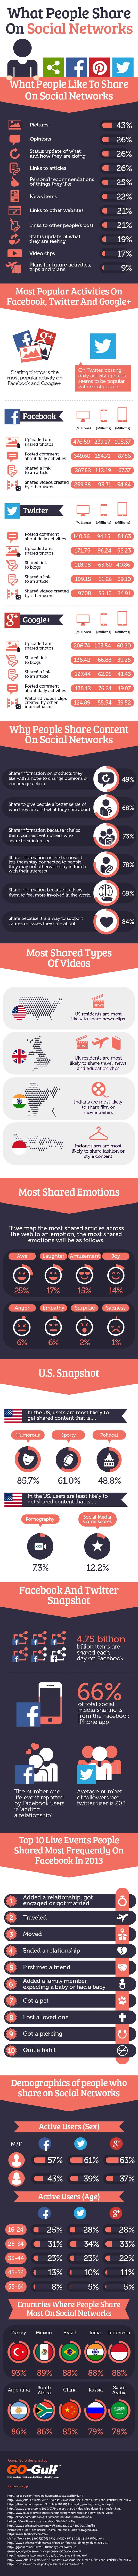 What People Share [Infographic]